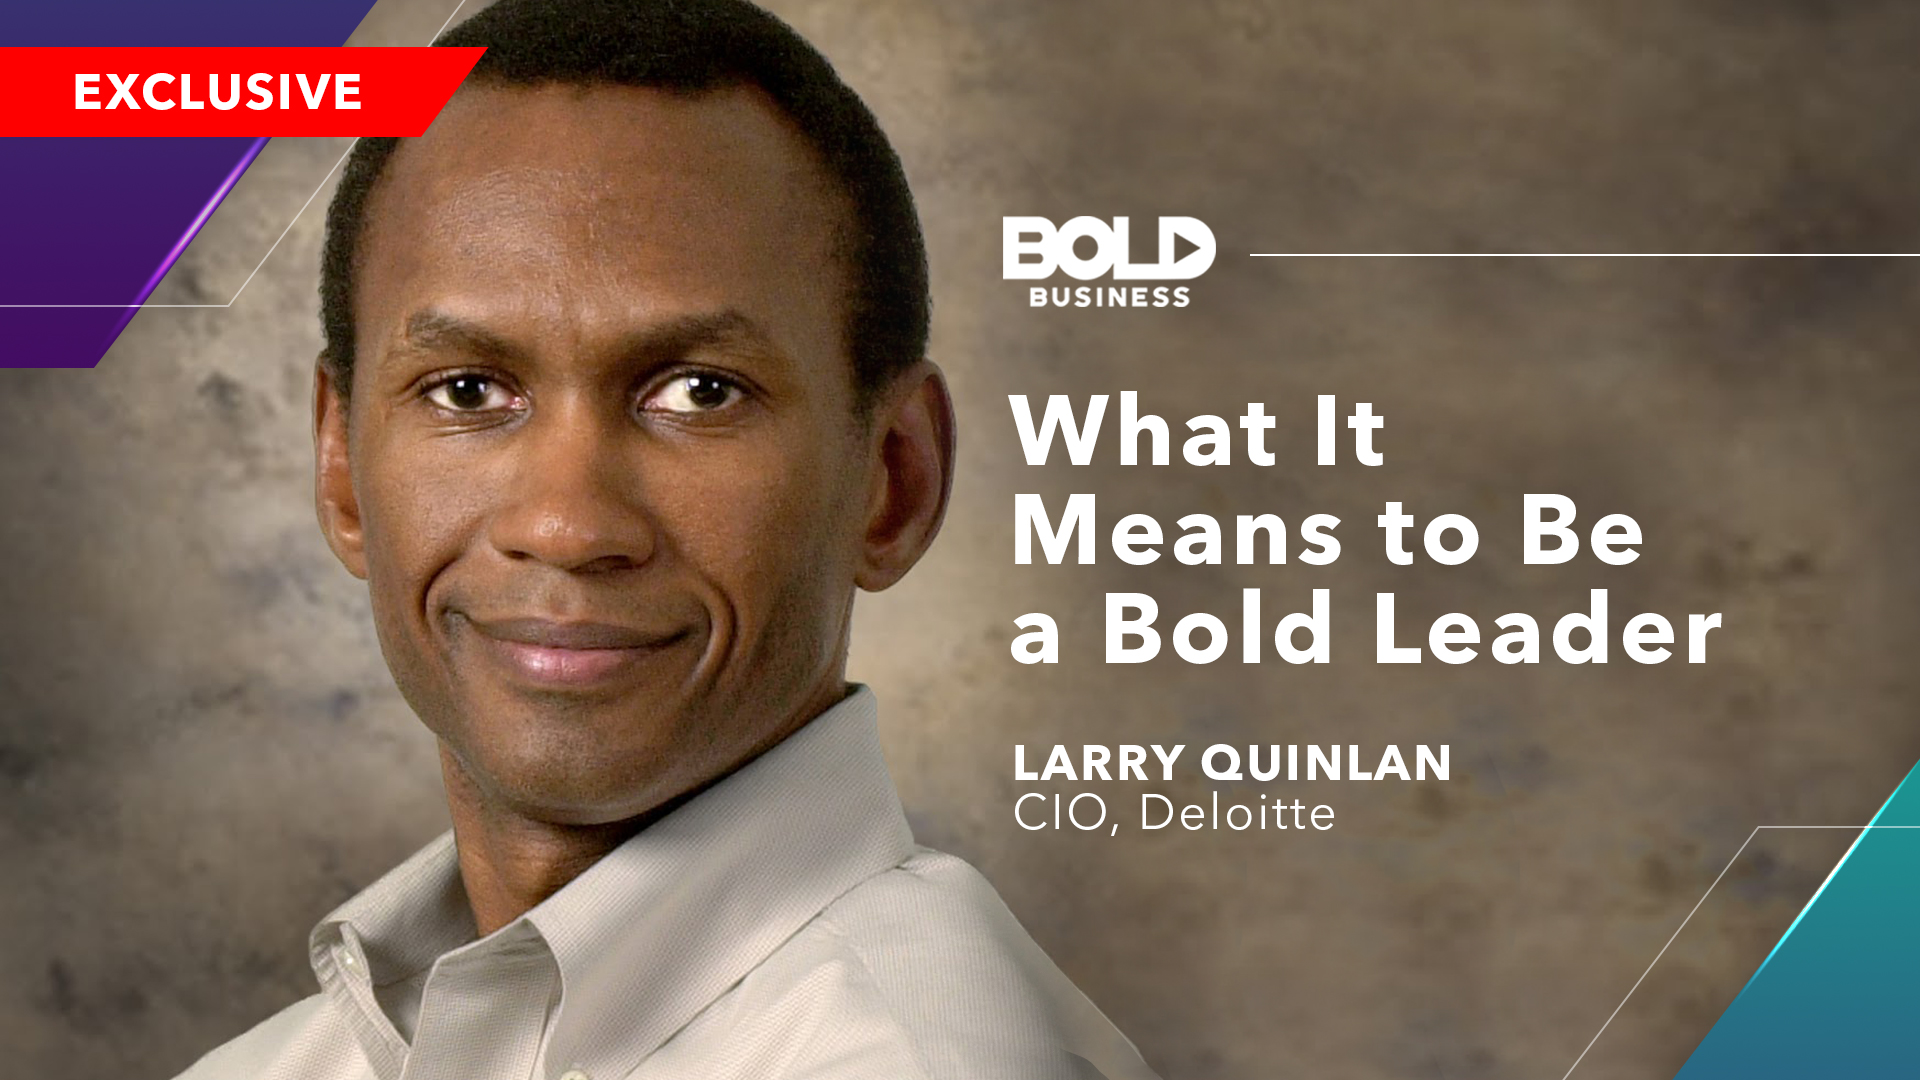 Larry Quinlan From Deloitte: What It Means To Be A Bold Leader?